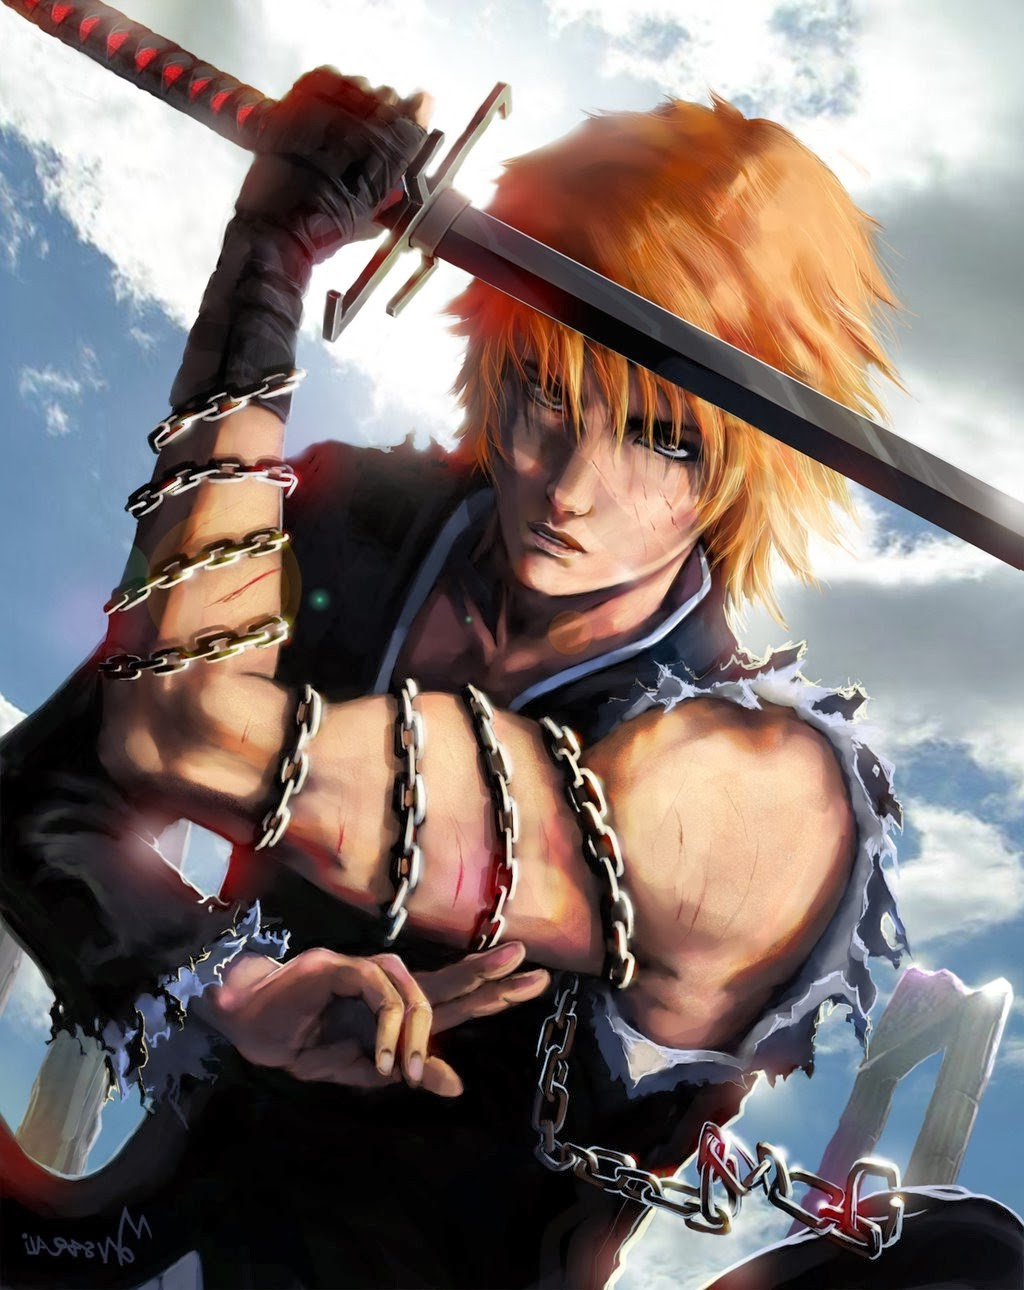 3d Wallpaper Girl And Boy Anime Bleach Kurosaki Ichigo Orange Hair Chains Sword